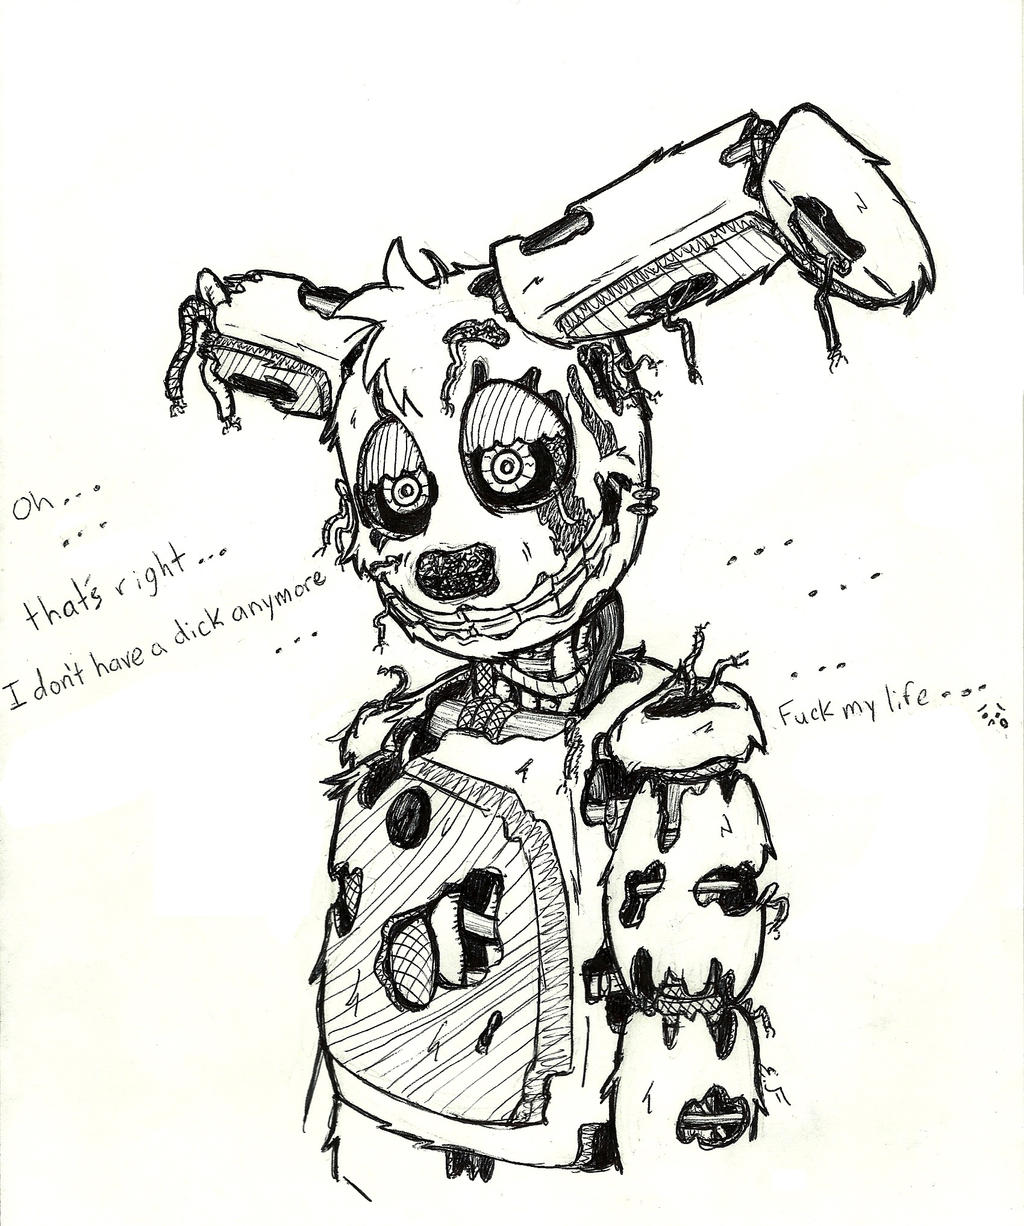 A Sad Springtrap By Lilttemiss On DeviantArt